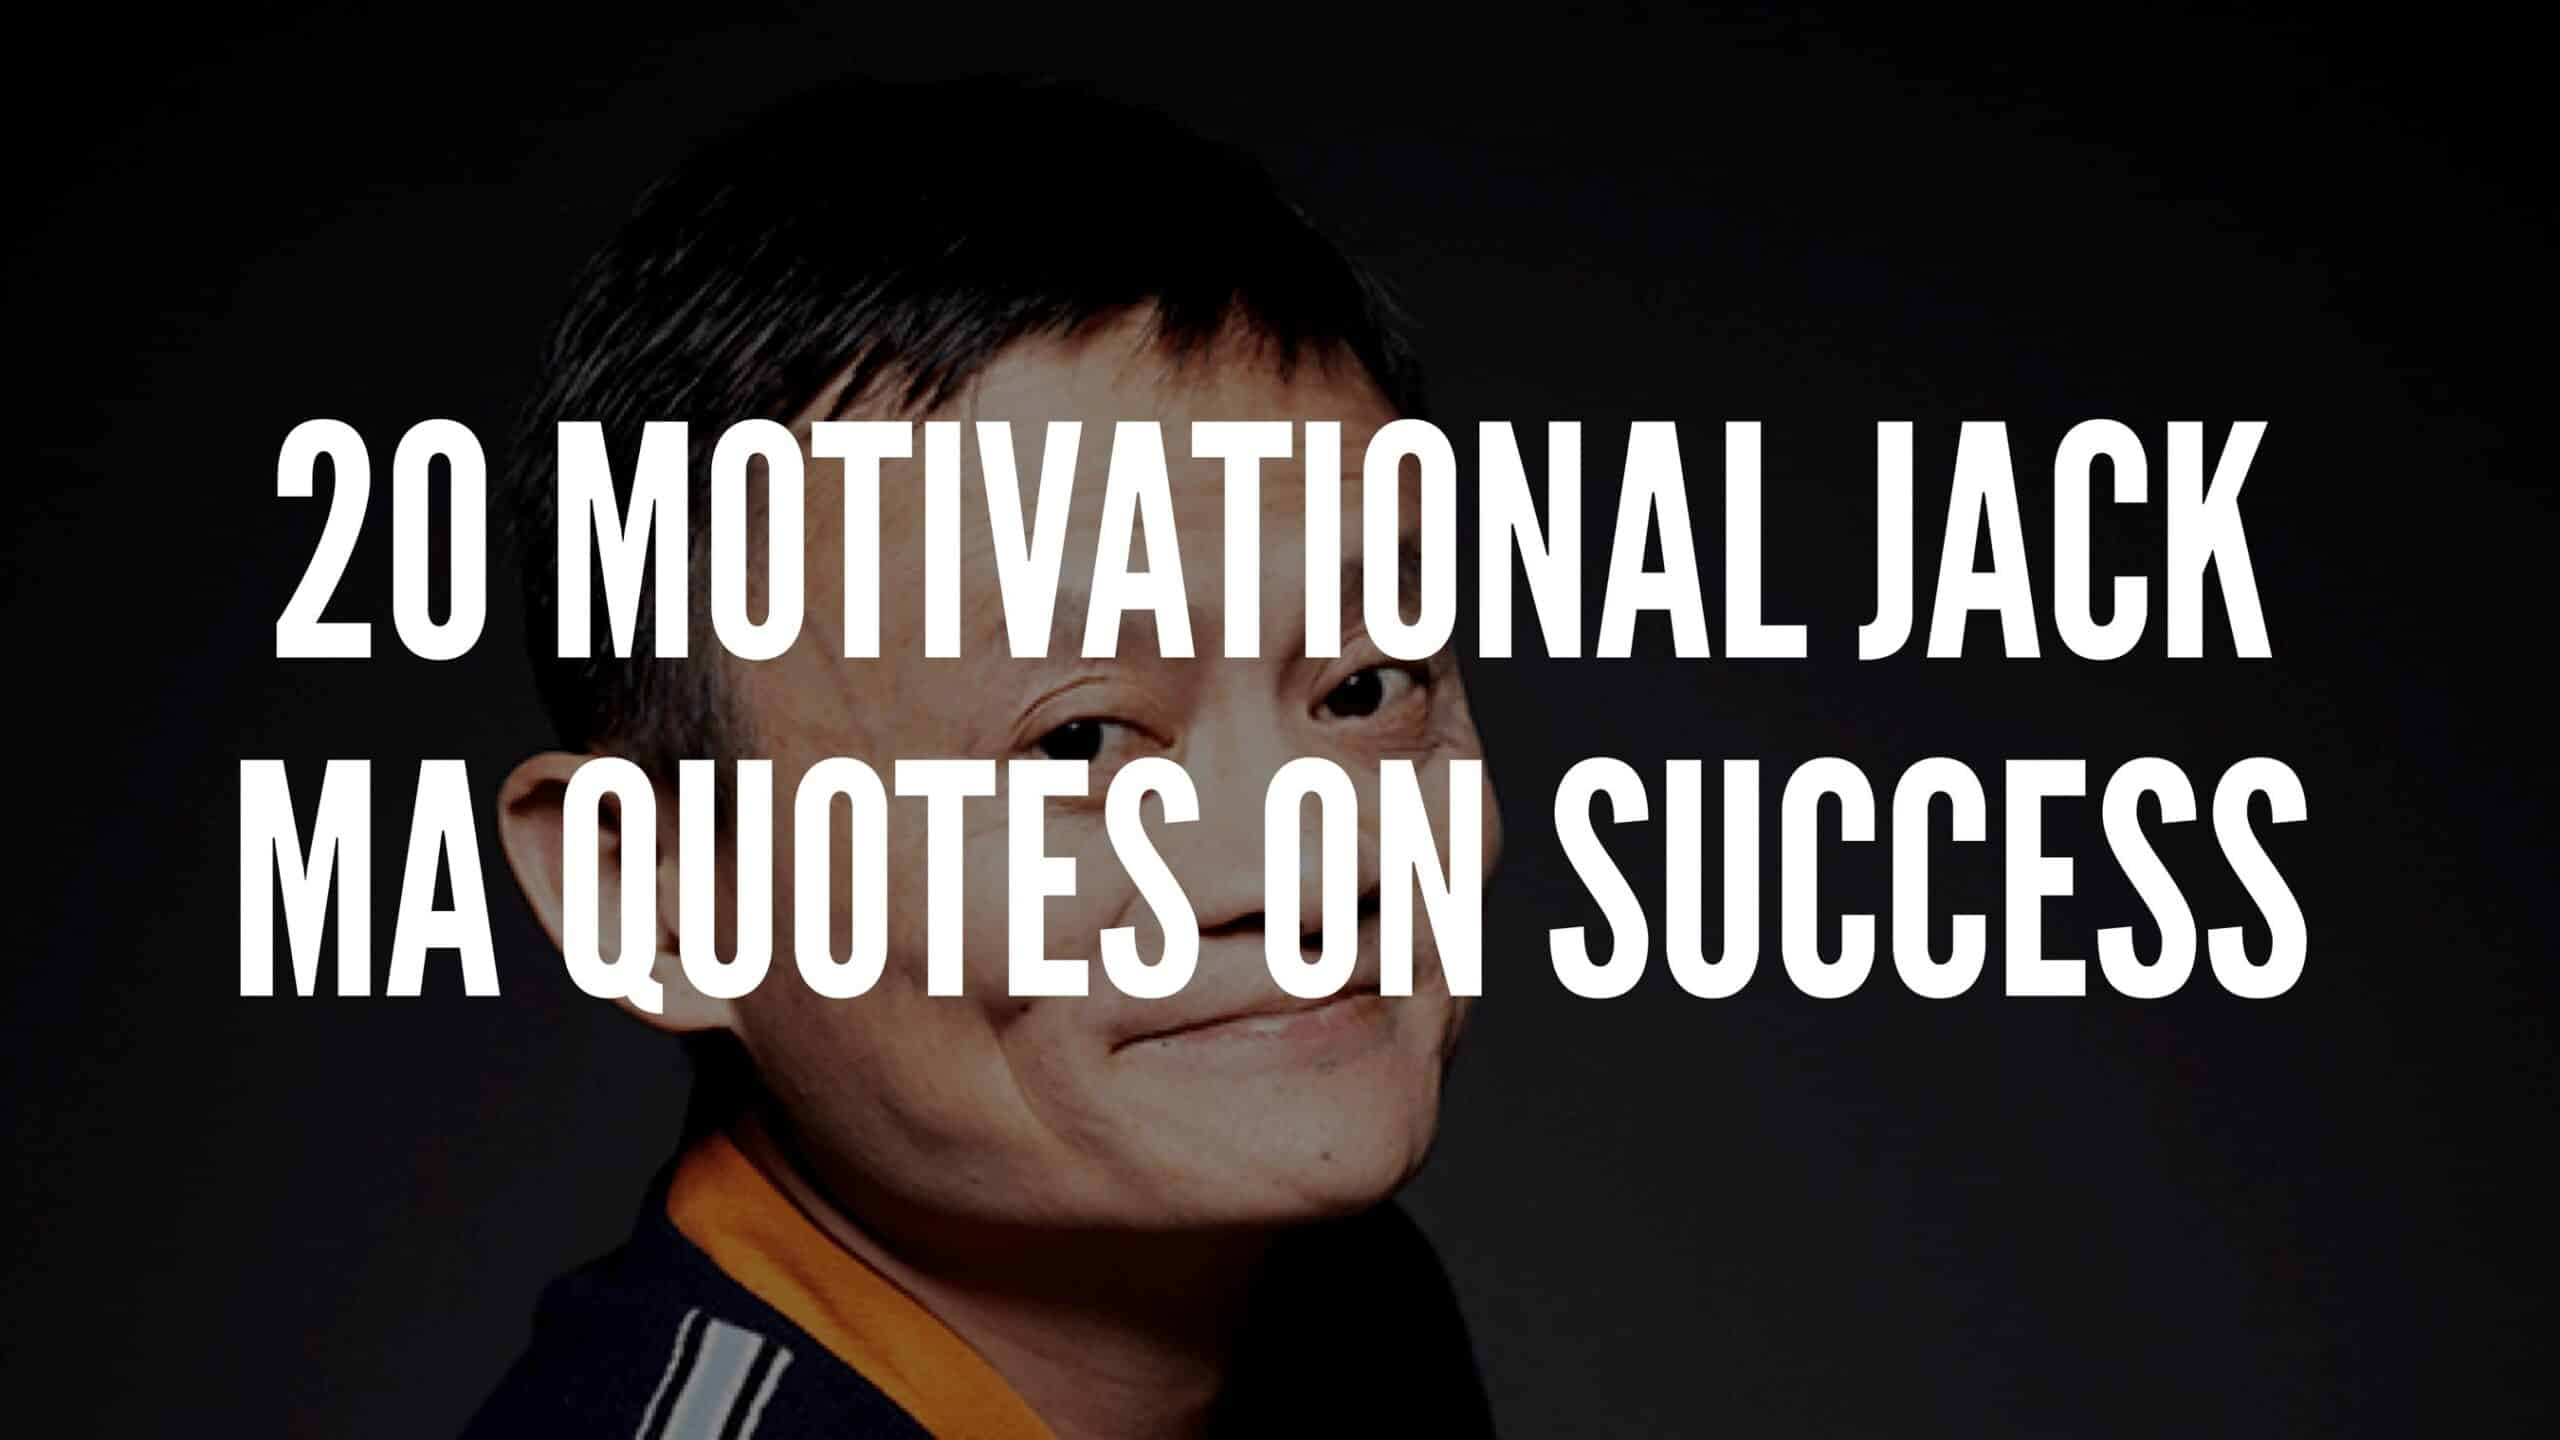 20 Motivational Jack Ma Quotes On Success